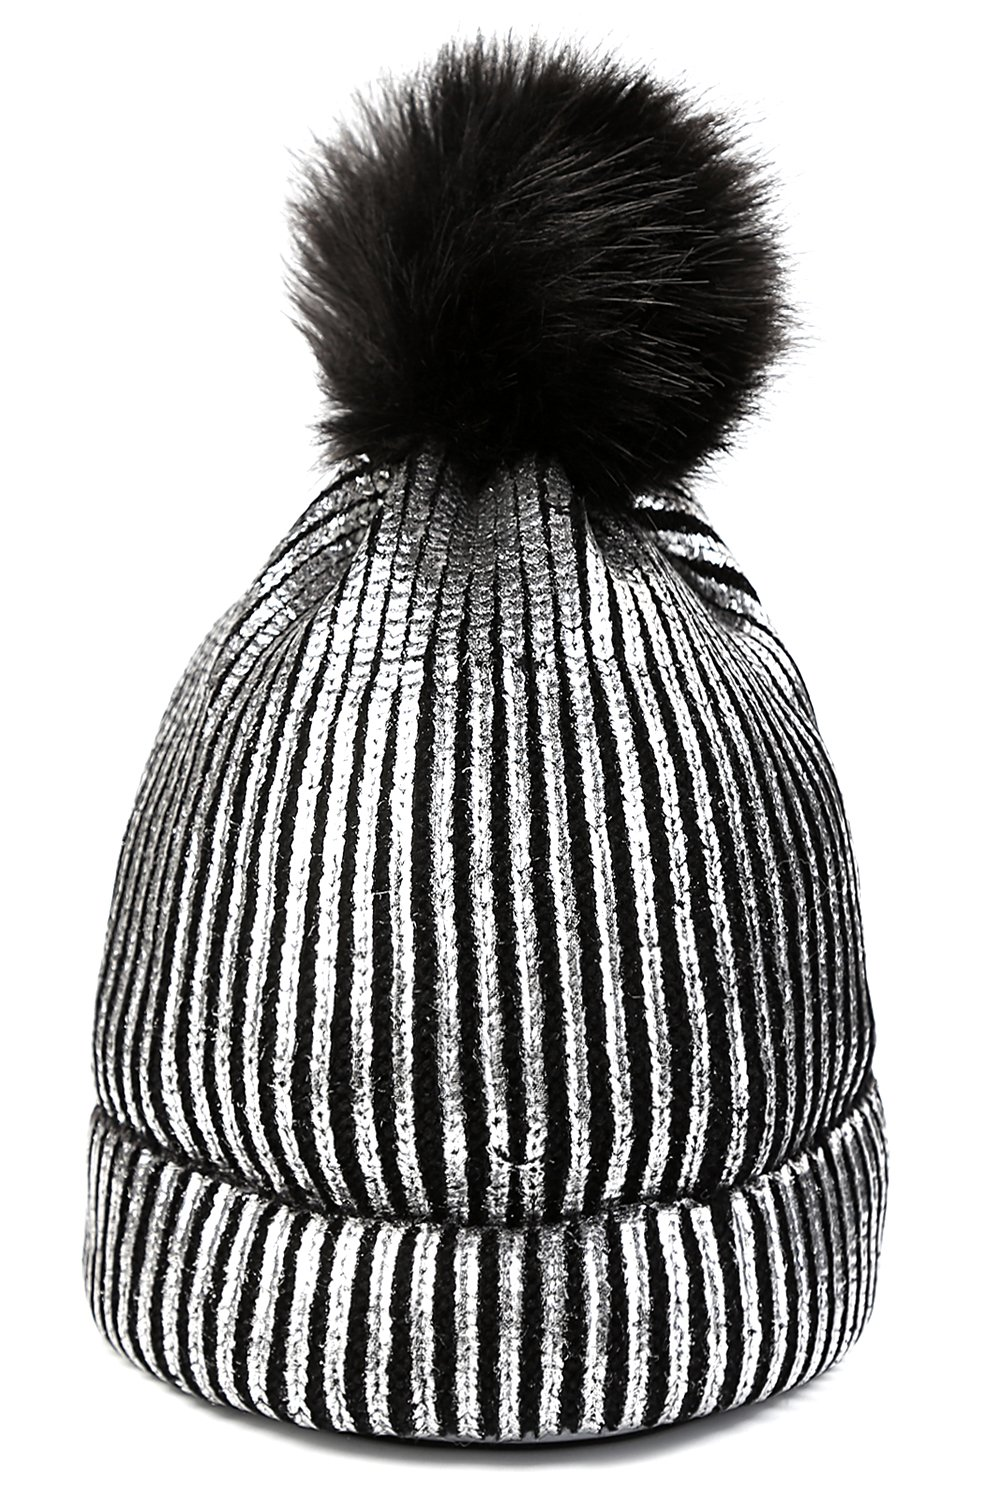 FADA Sliver Beanie Hats Winter Warm Cool Girl Thick Cable Knit Faux Fuzzy Fur Pom Skull Cap